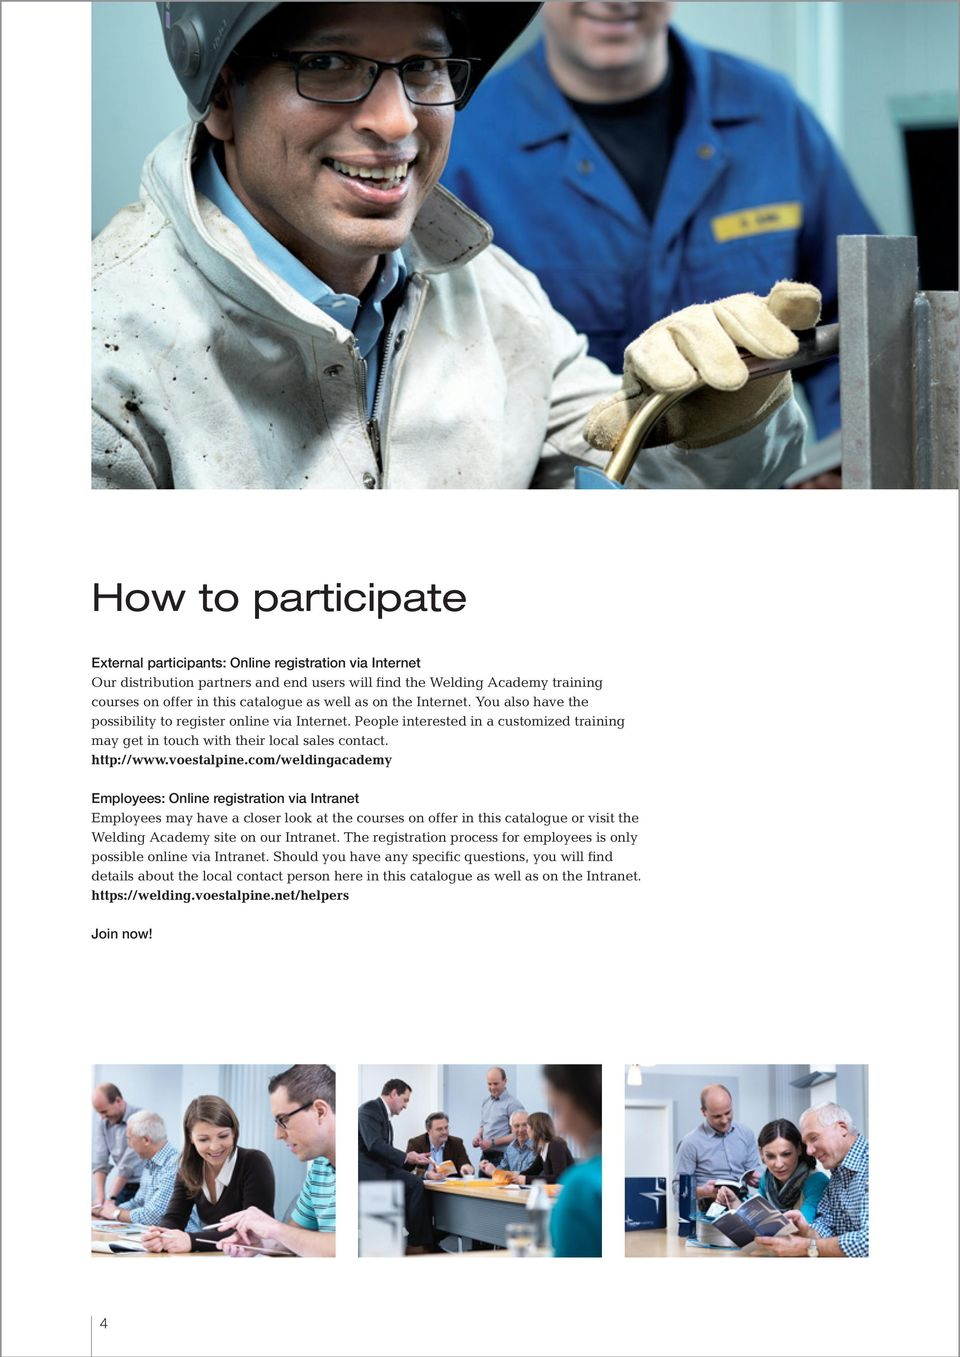 com/weldingacademy Employees: Online registration via Intranet Employees may have a closer look at the courses on offer in this catalogue or visit the Welding Academy site on our Intranet.